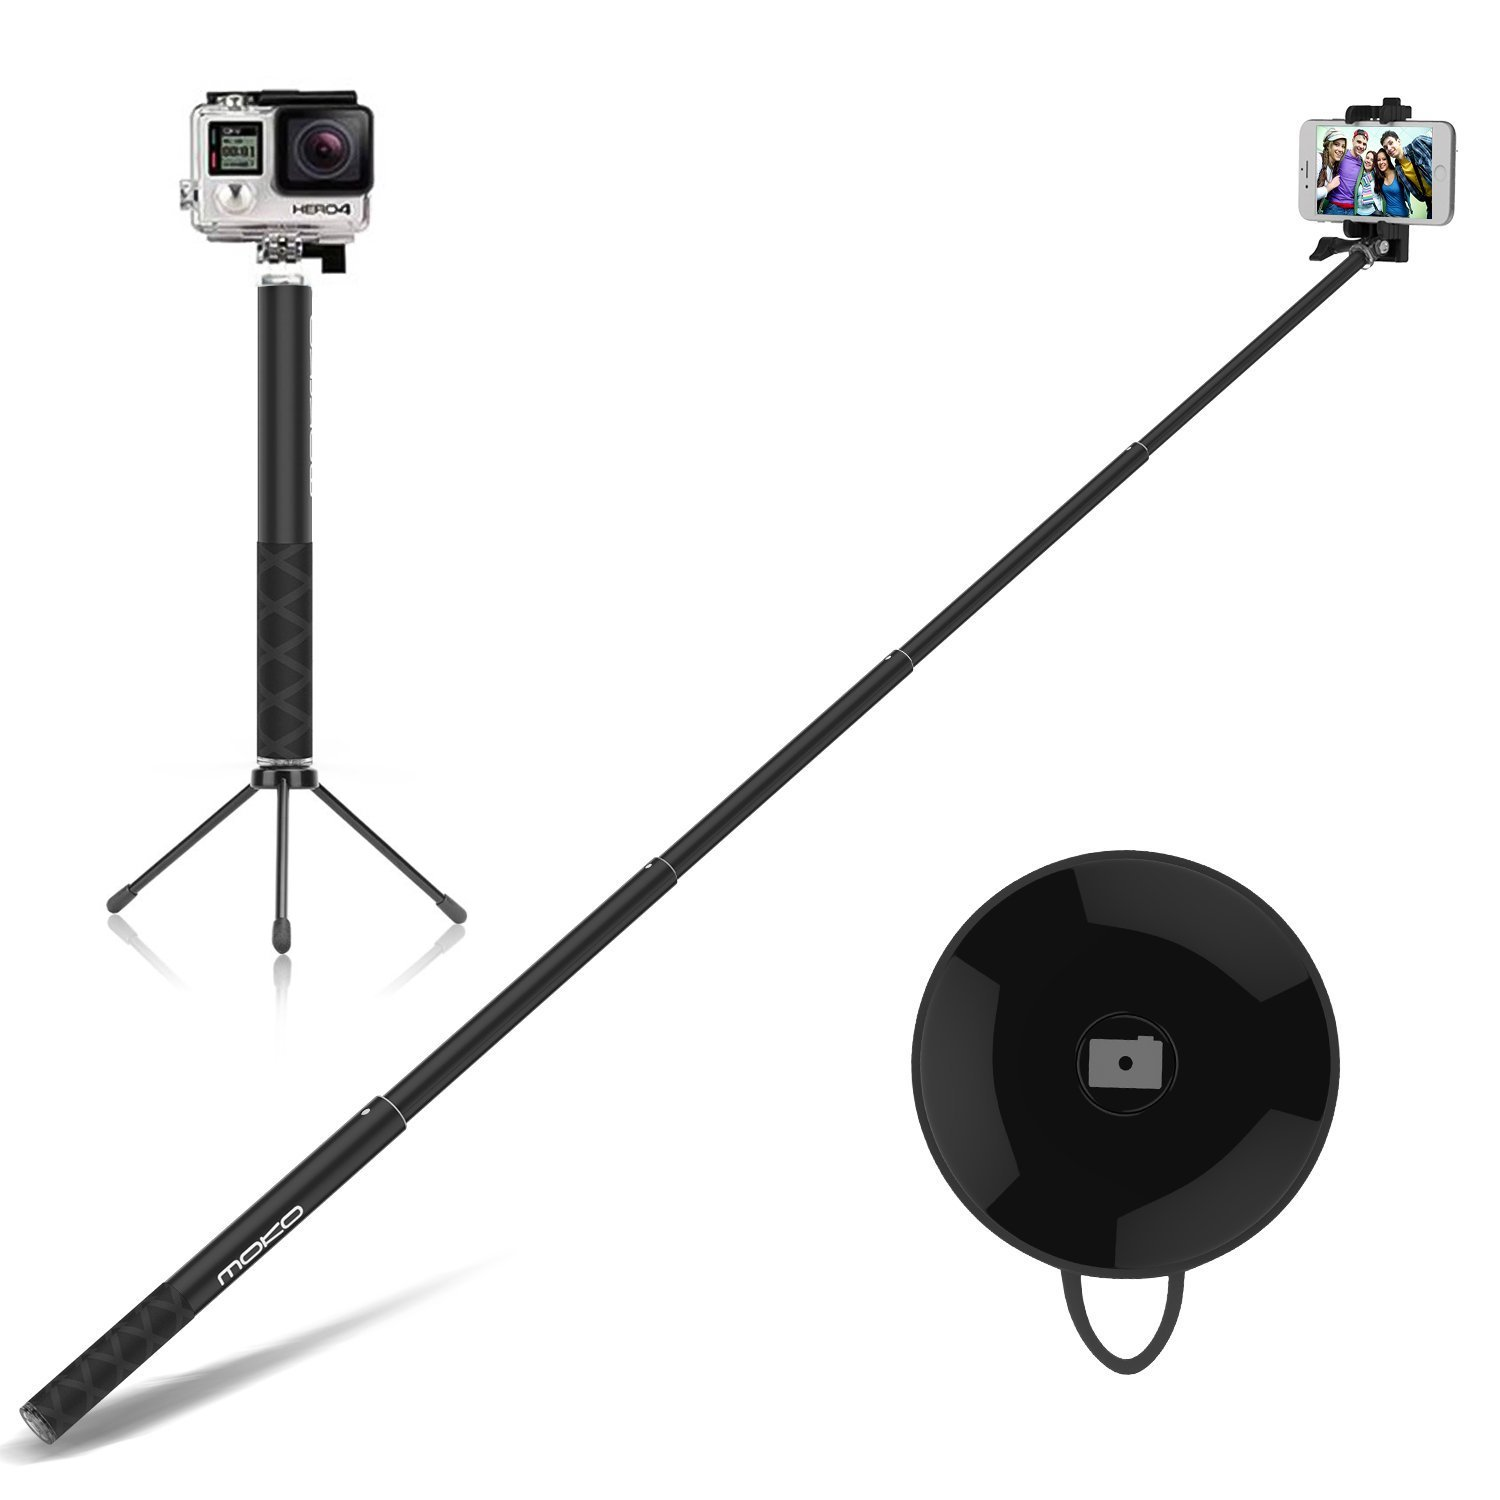 Selfie Stick with Remote & Tripod Stand, MoKo 4ft Extendable Self-portrait Monopod, Phone Holder Width Up to 88mm for iPhone XS/XS Max/XR, Galaxy S7 Edge, Honor 5X, Moto, BLU - ORANGE